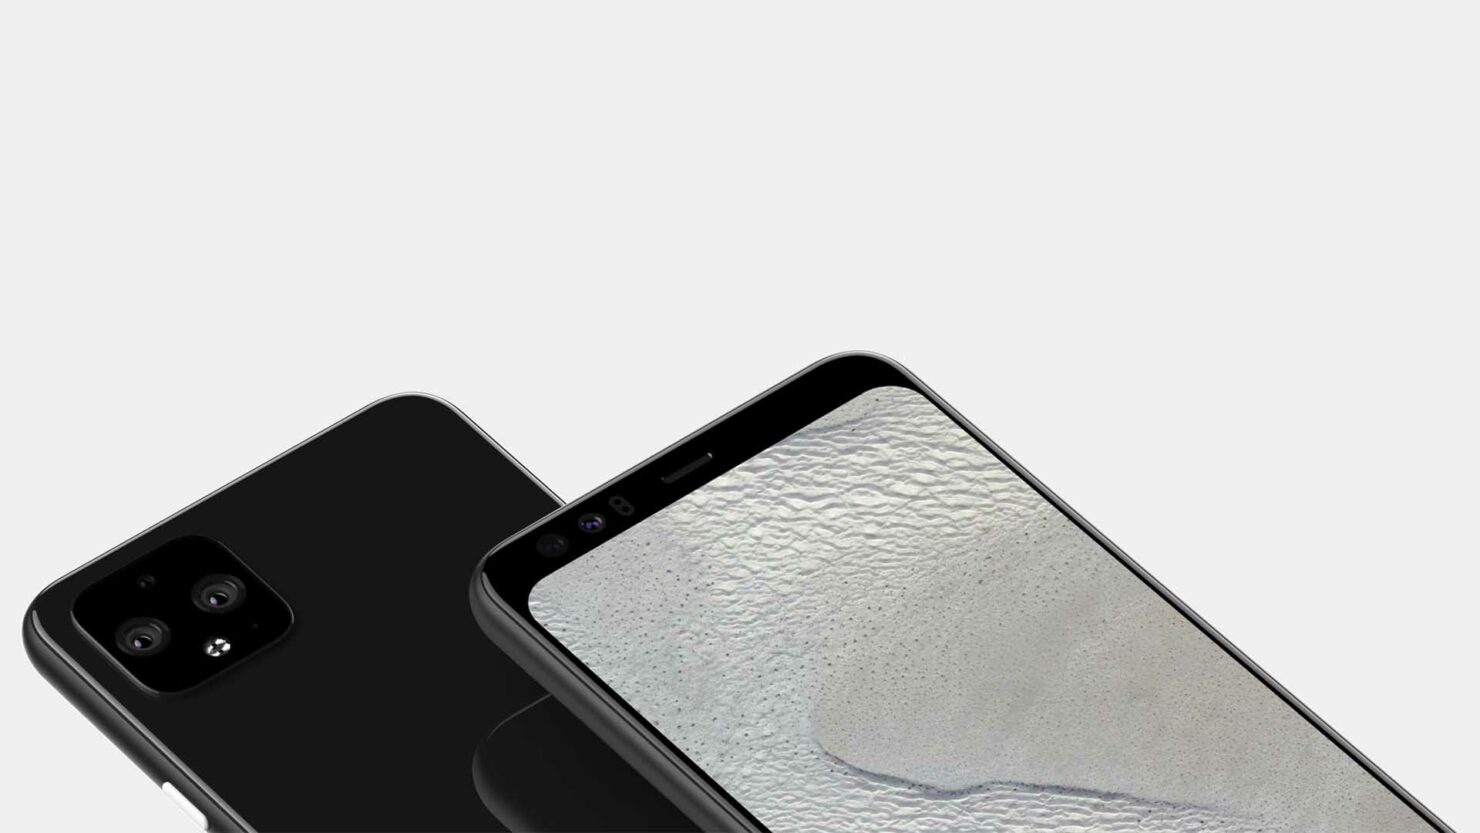 Pixel 4 specifications through leaked images reveal 6GB RAM and more